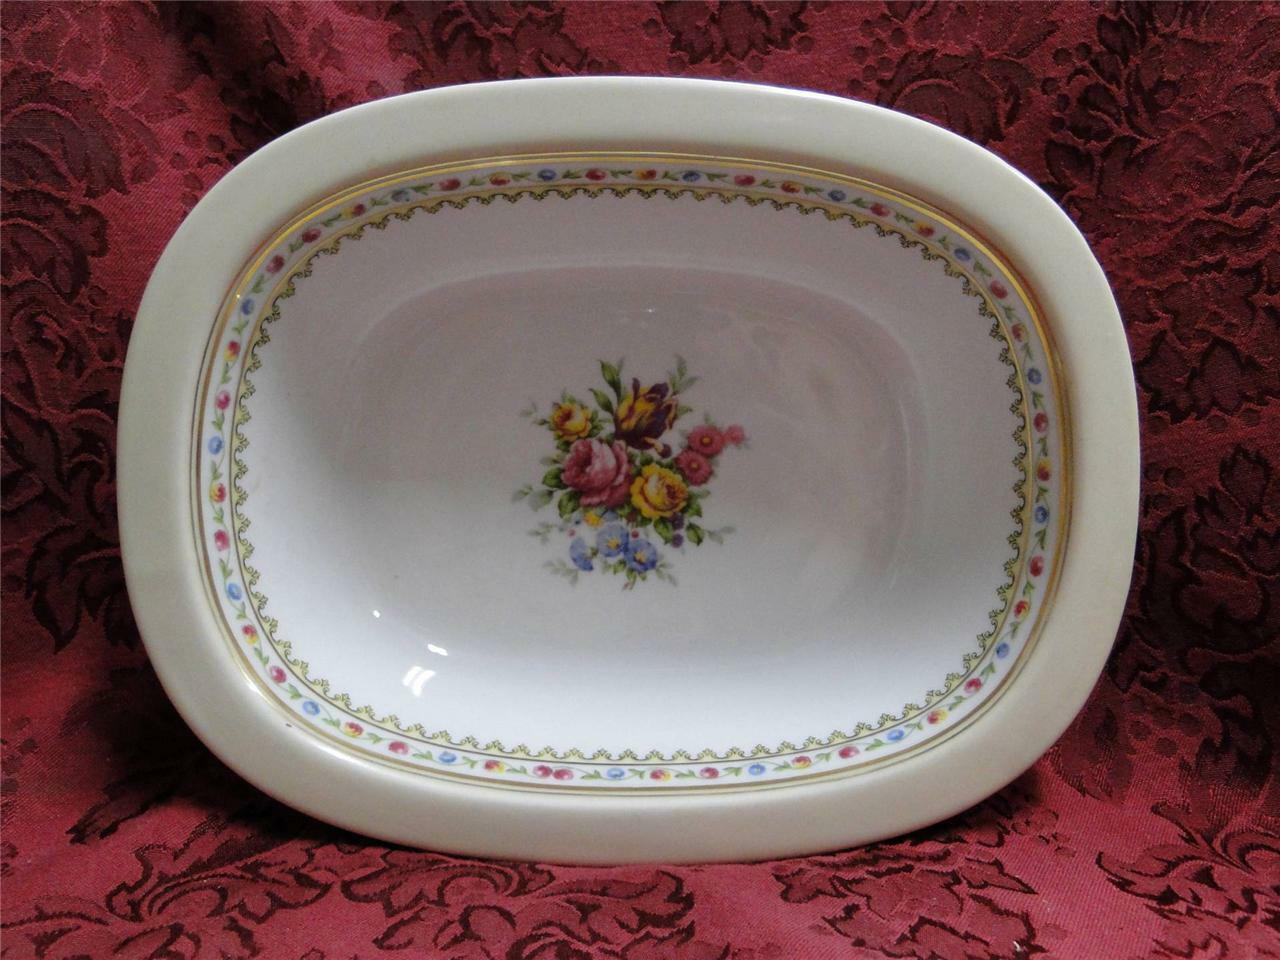 Raynaud RYD2: Tan Rim, Floral Center, Rose Trim: Oval Serving Bowl (s), 9 3/4""